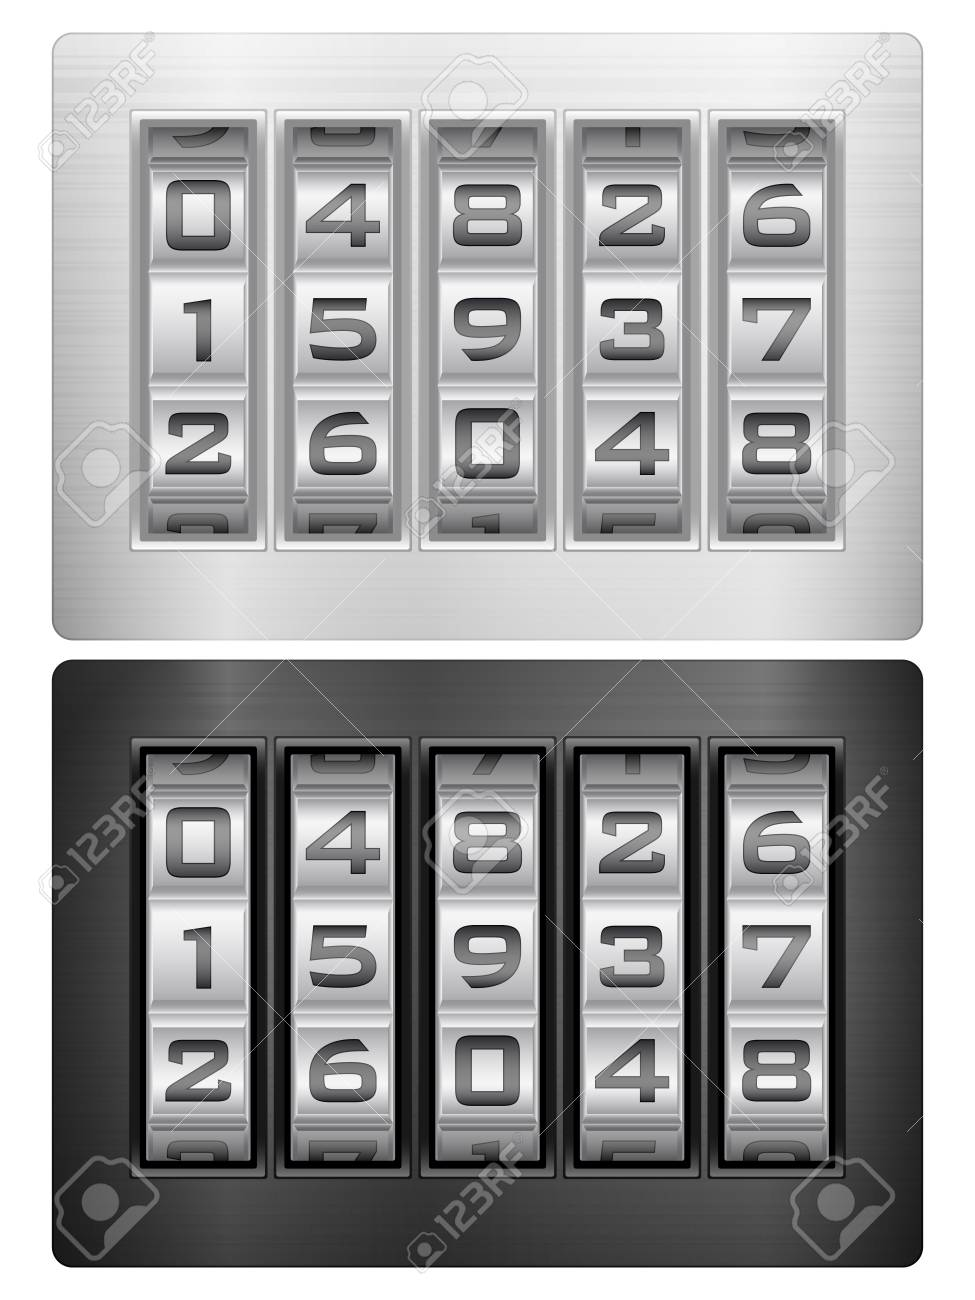 Combination lock icons on a white background. Stock Vector - 17854746